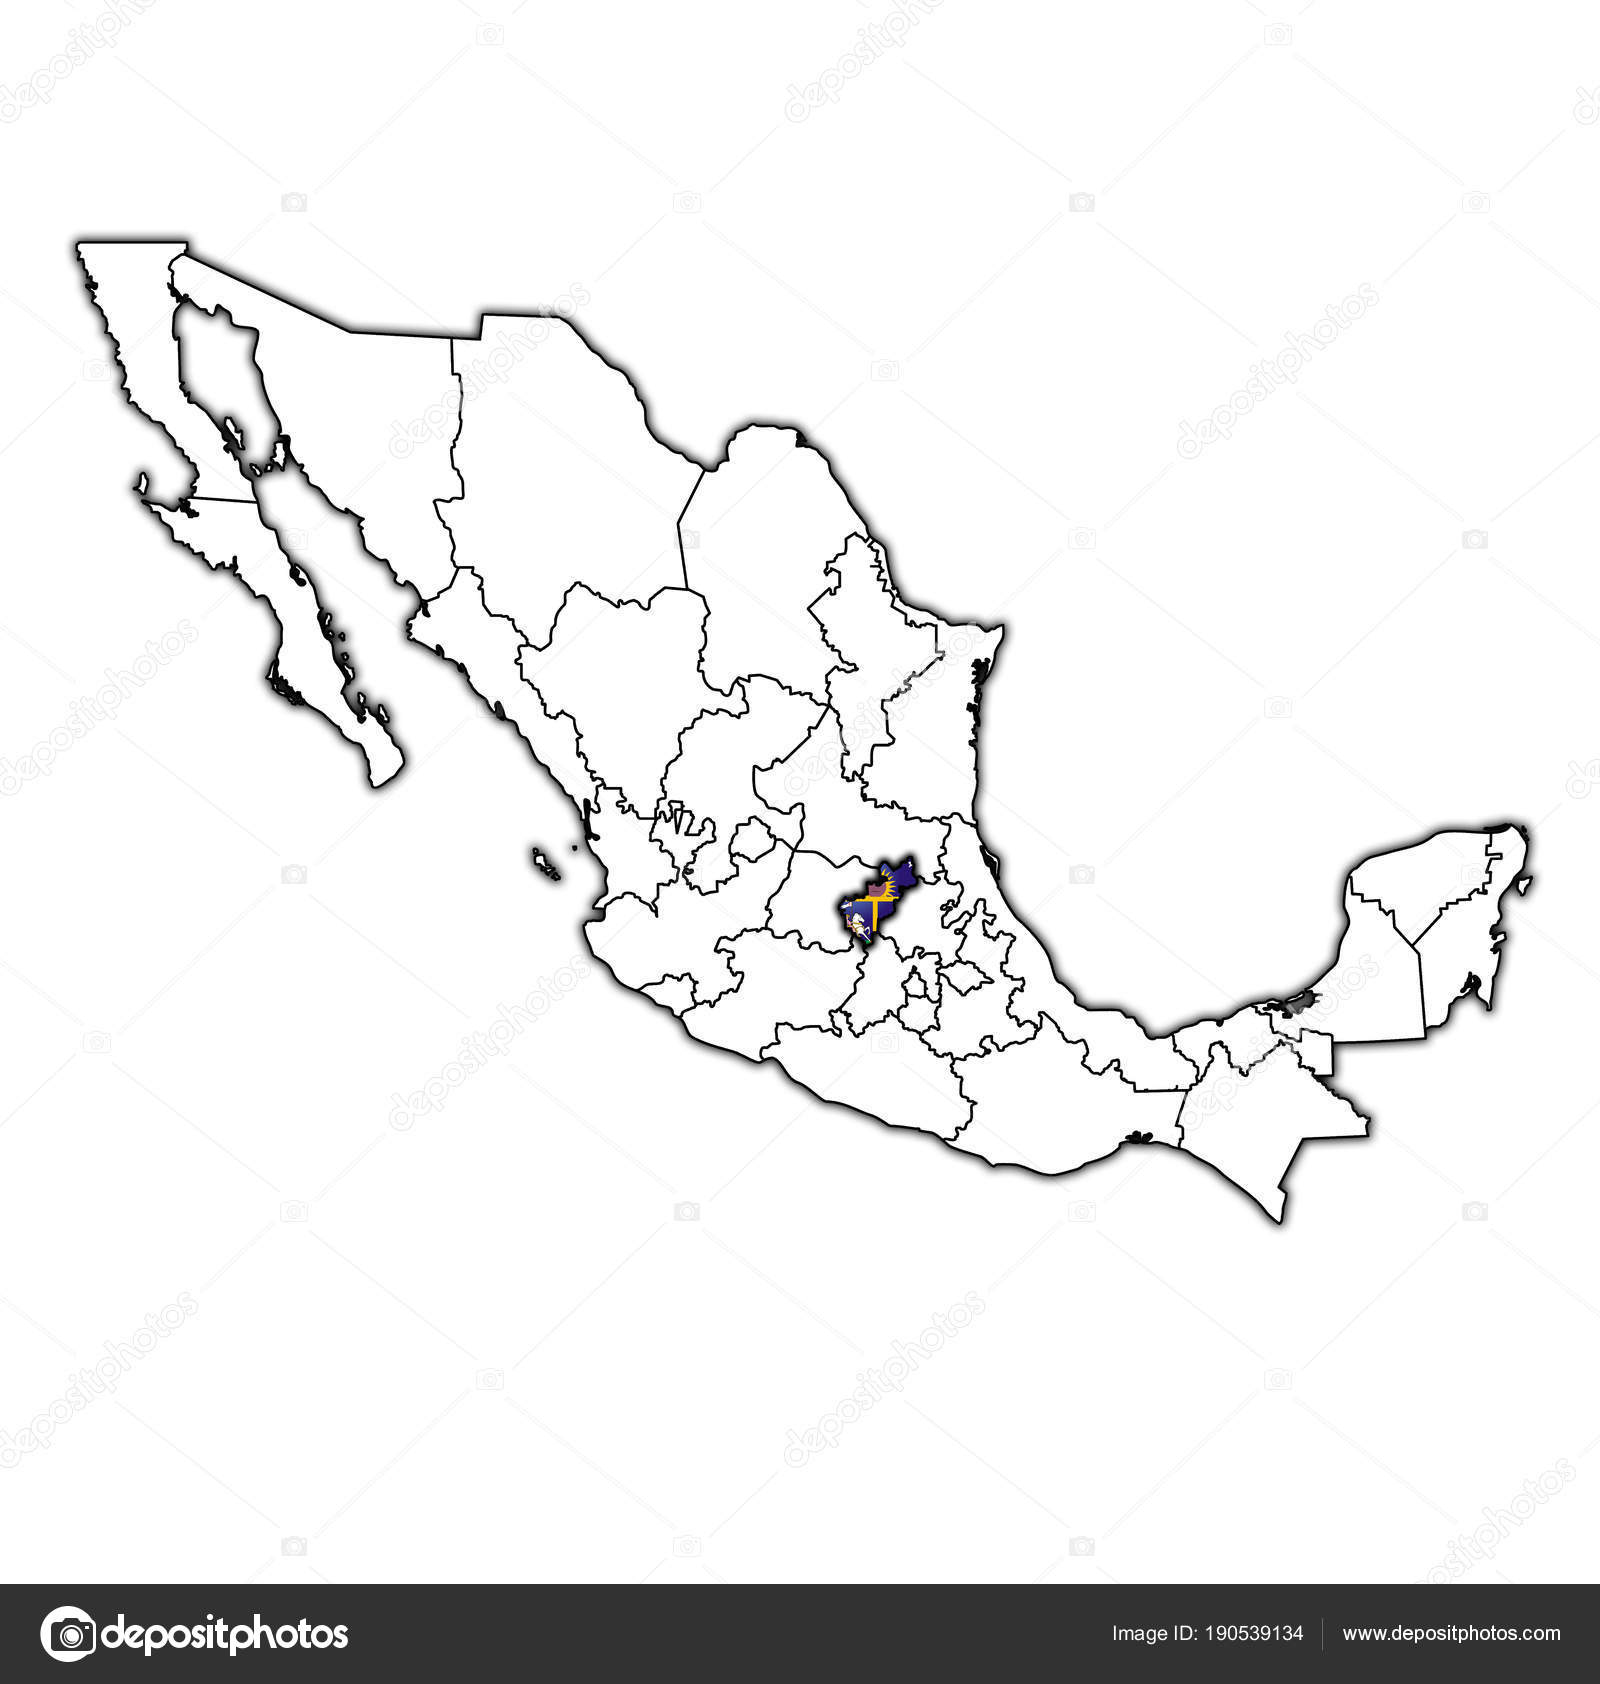 Queretaro on administration map of Mexico Stock Photo michal812